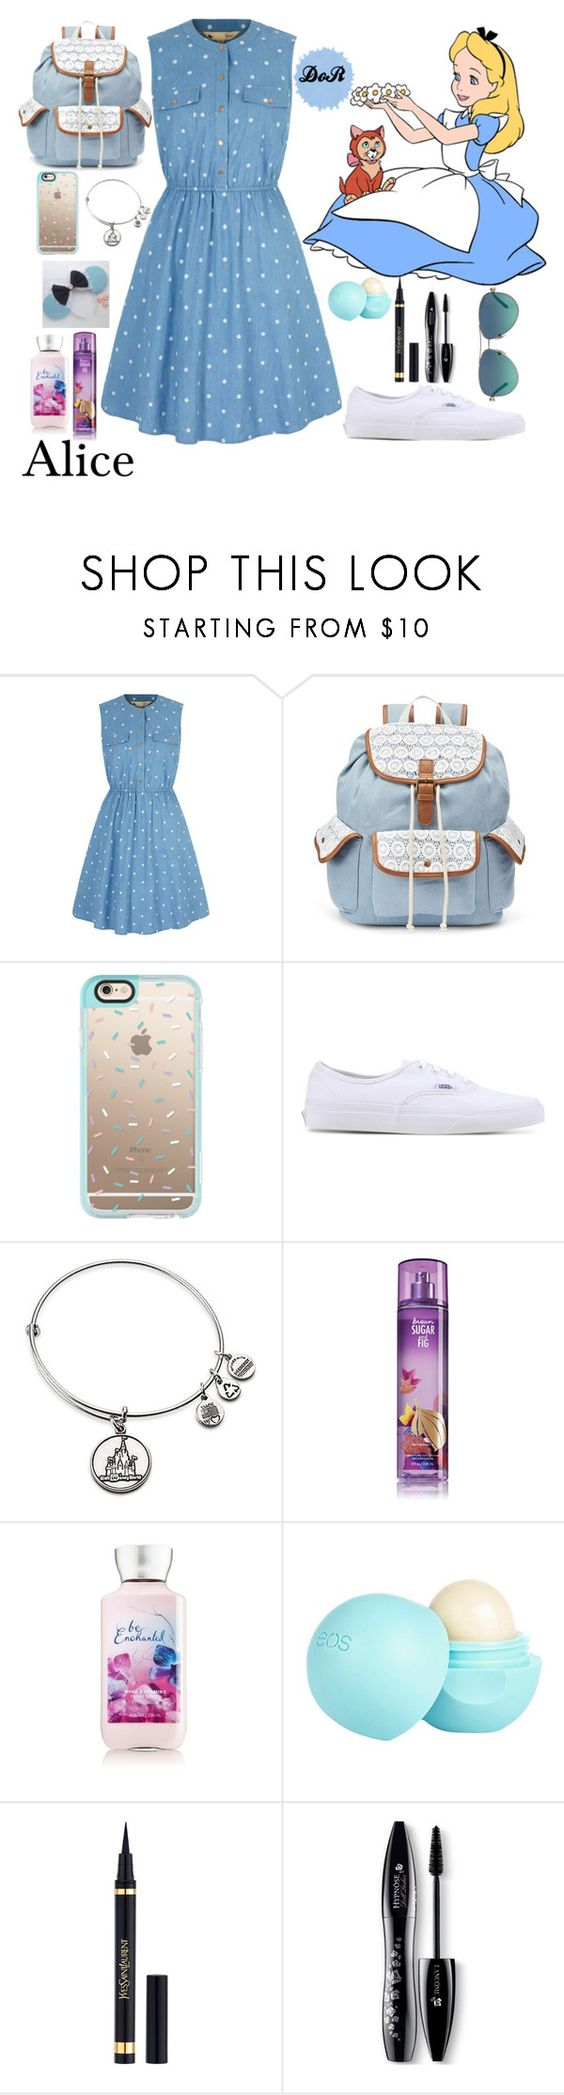 """""""Alice"""" by disneyonrepeat ❤ liked on Polyvore featuring Yumi, Mudd, Casetify, Vans, Disney, River Island, Yves Saint Laurent, Lancôme, Tiffany & Co. and disney"""